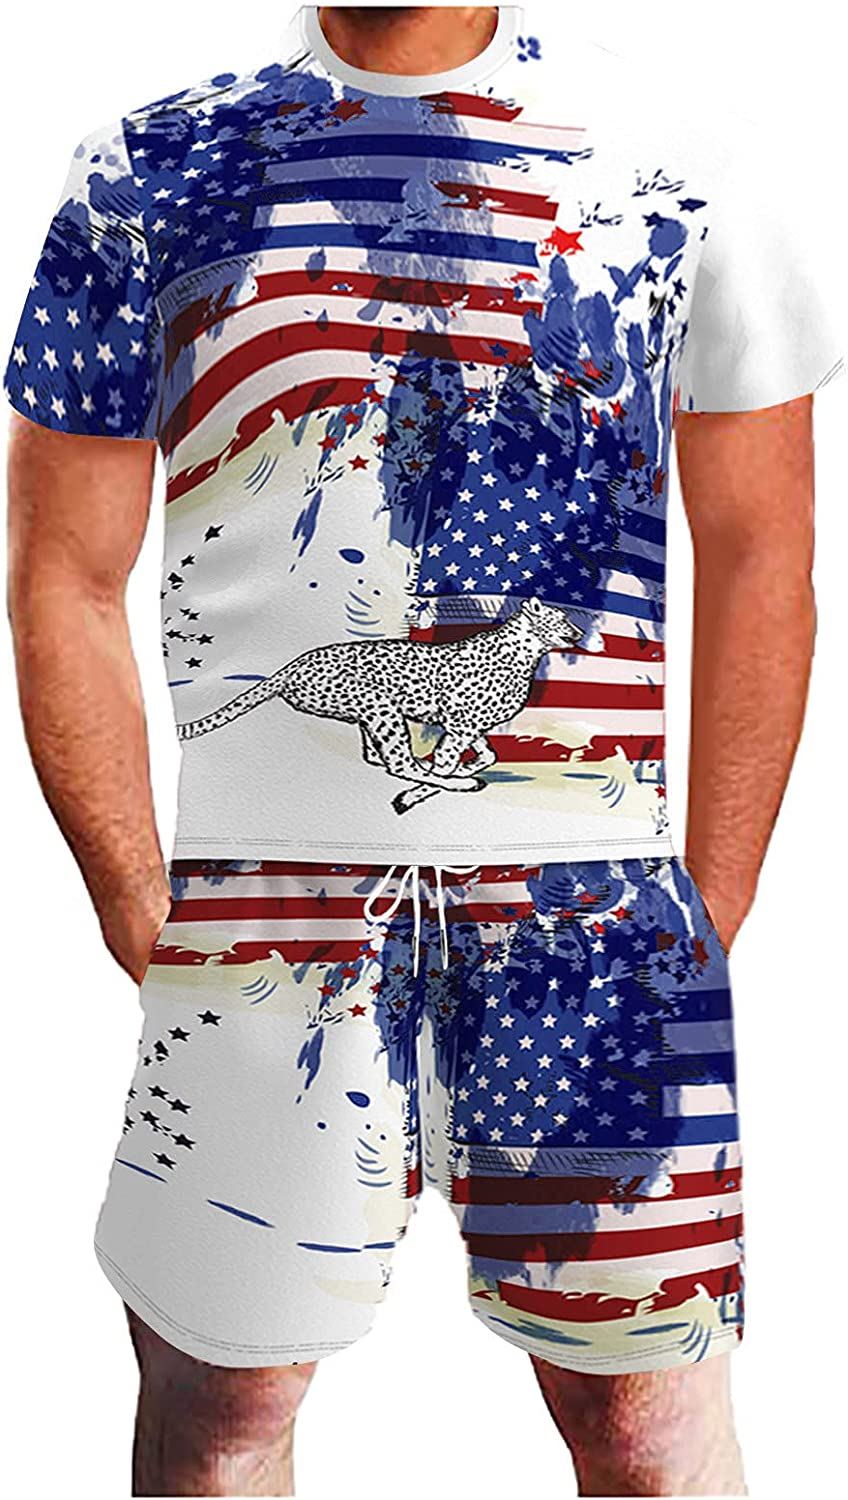 Maryia Mens Casual 3D Print Original Jumpsuits 4th of July American Flag Shorts Short Sleeve Shirt Rompers Outfits